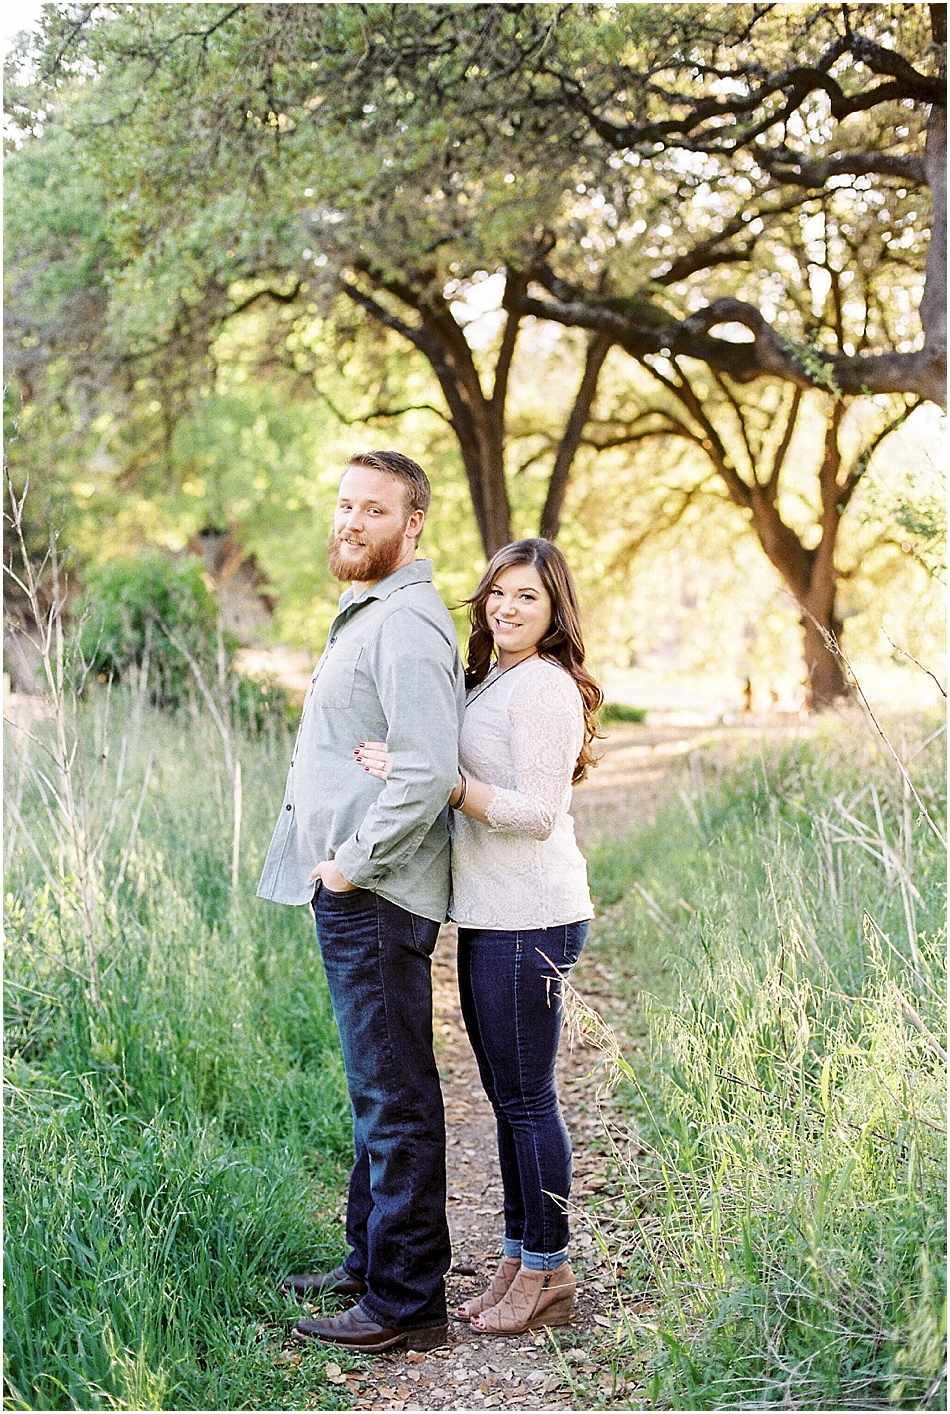 Brooke + Nick | Fine Art Creek Side Engagement | Film | Emilie Anne Photography-25.jpg